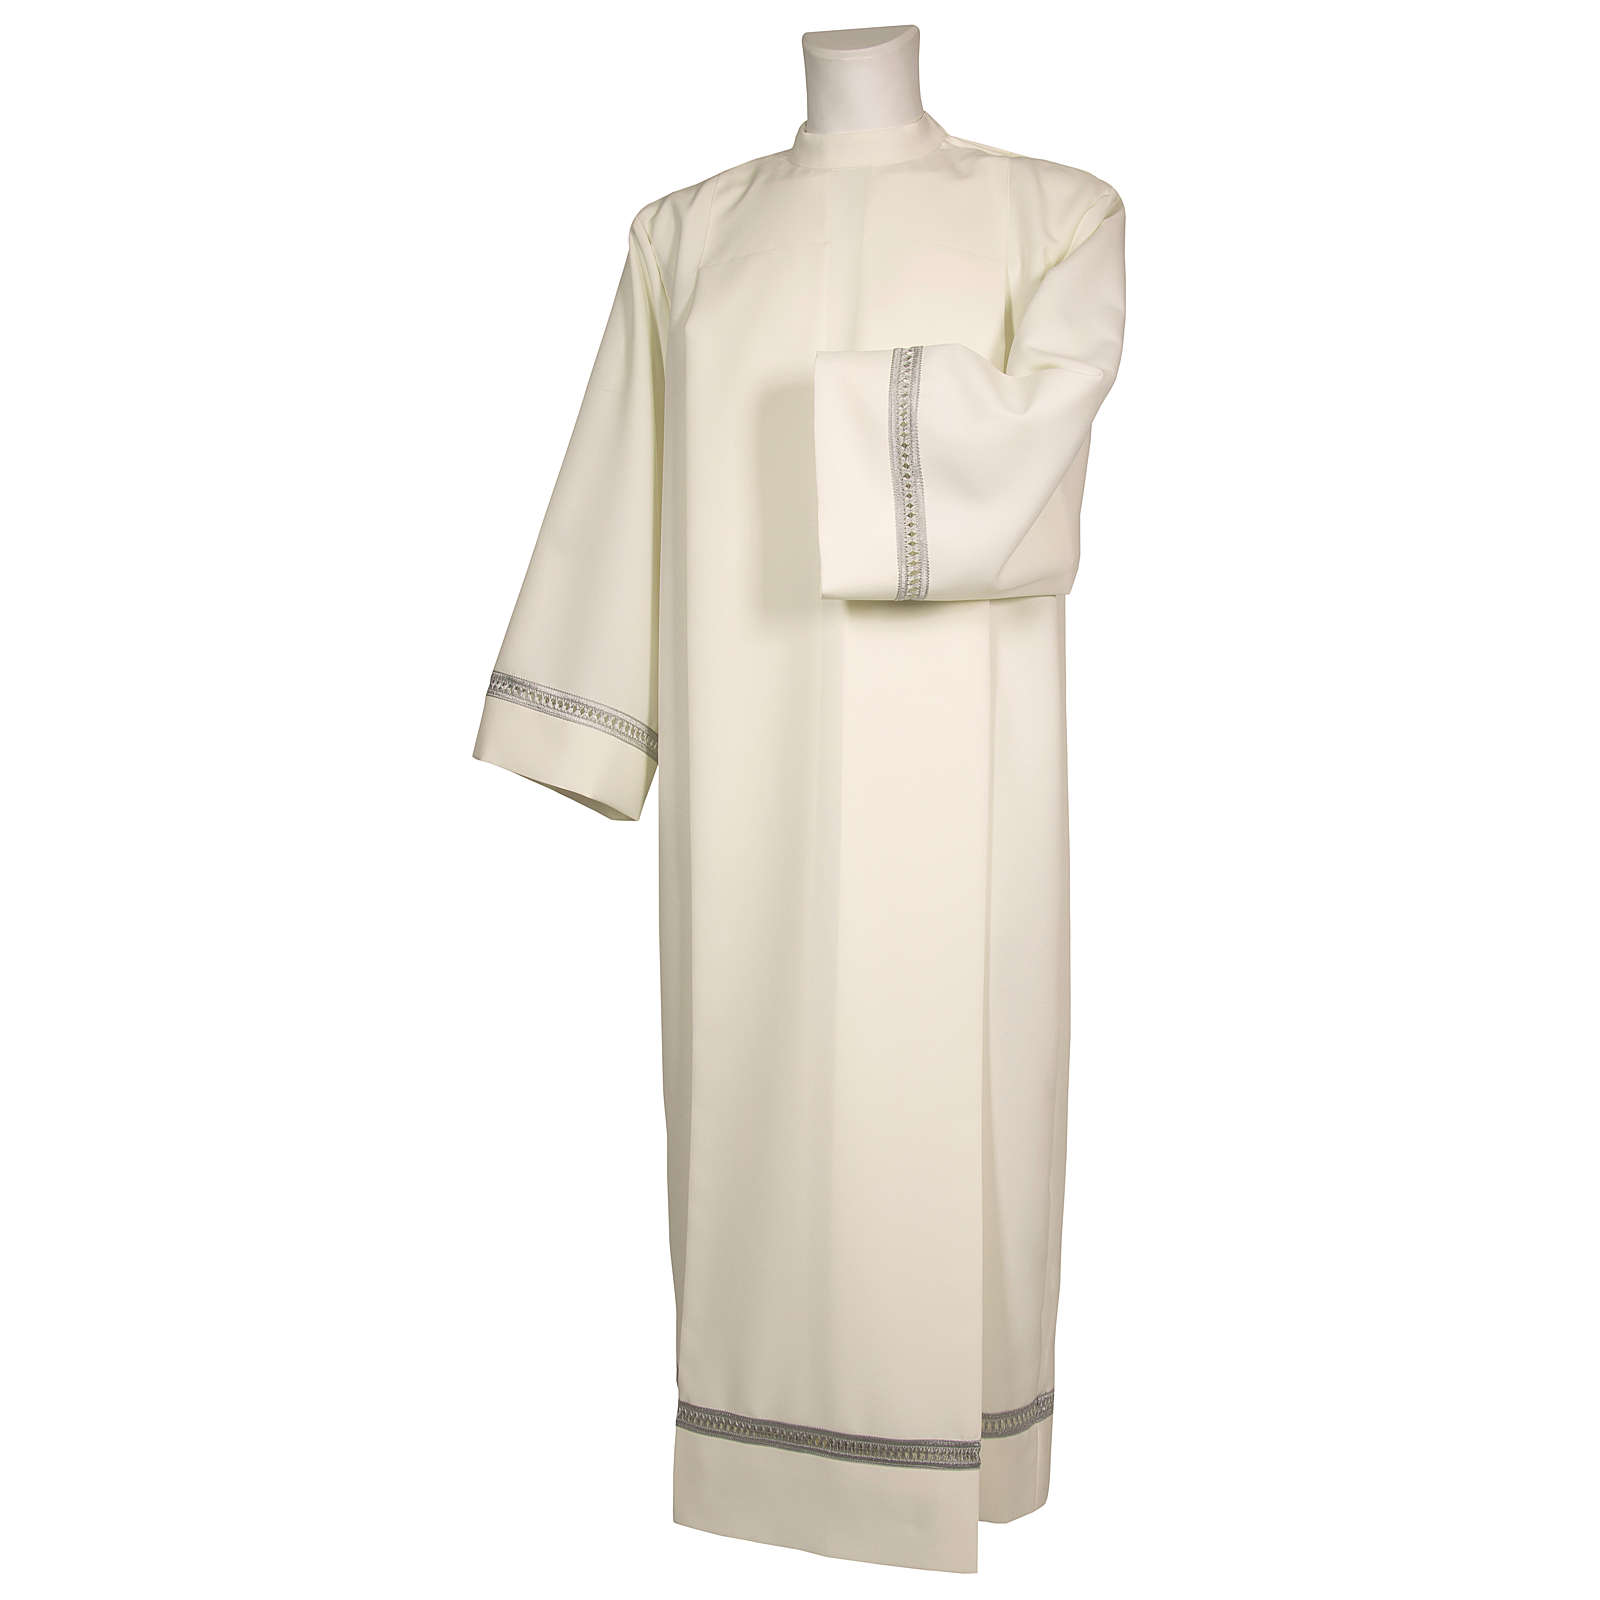 Catholic Alb with silver gigliuccio hemstitch 65% polyester 35% cotton and shoulder zipper, ivory 4